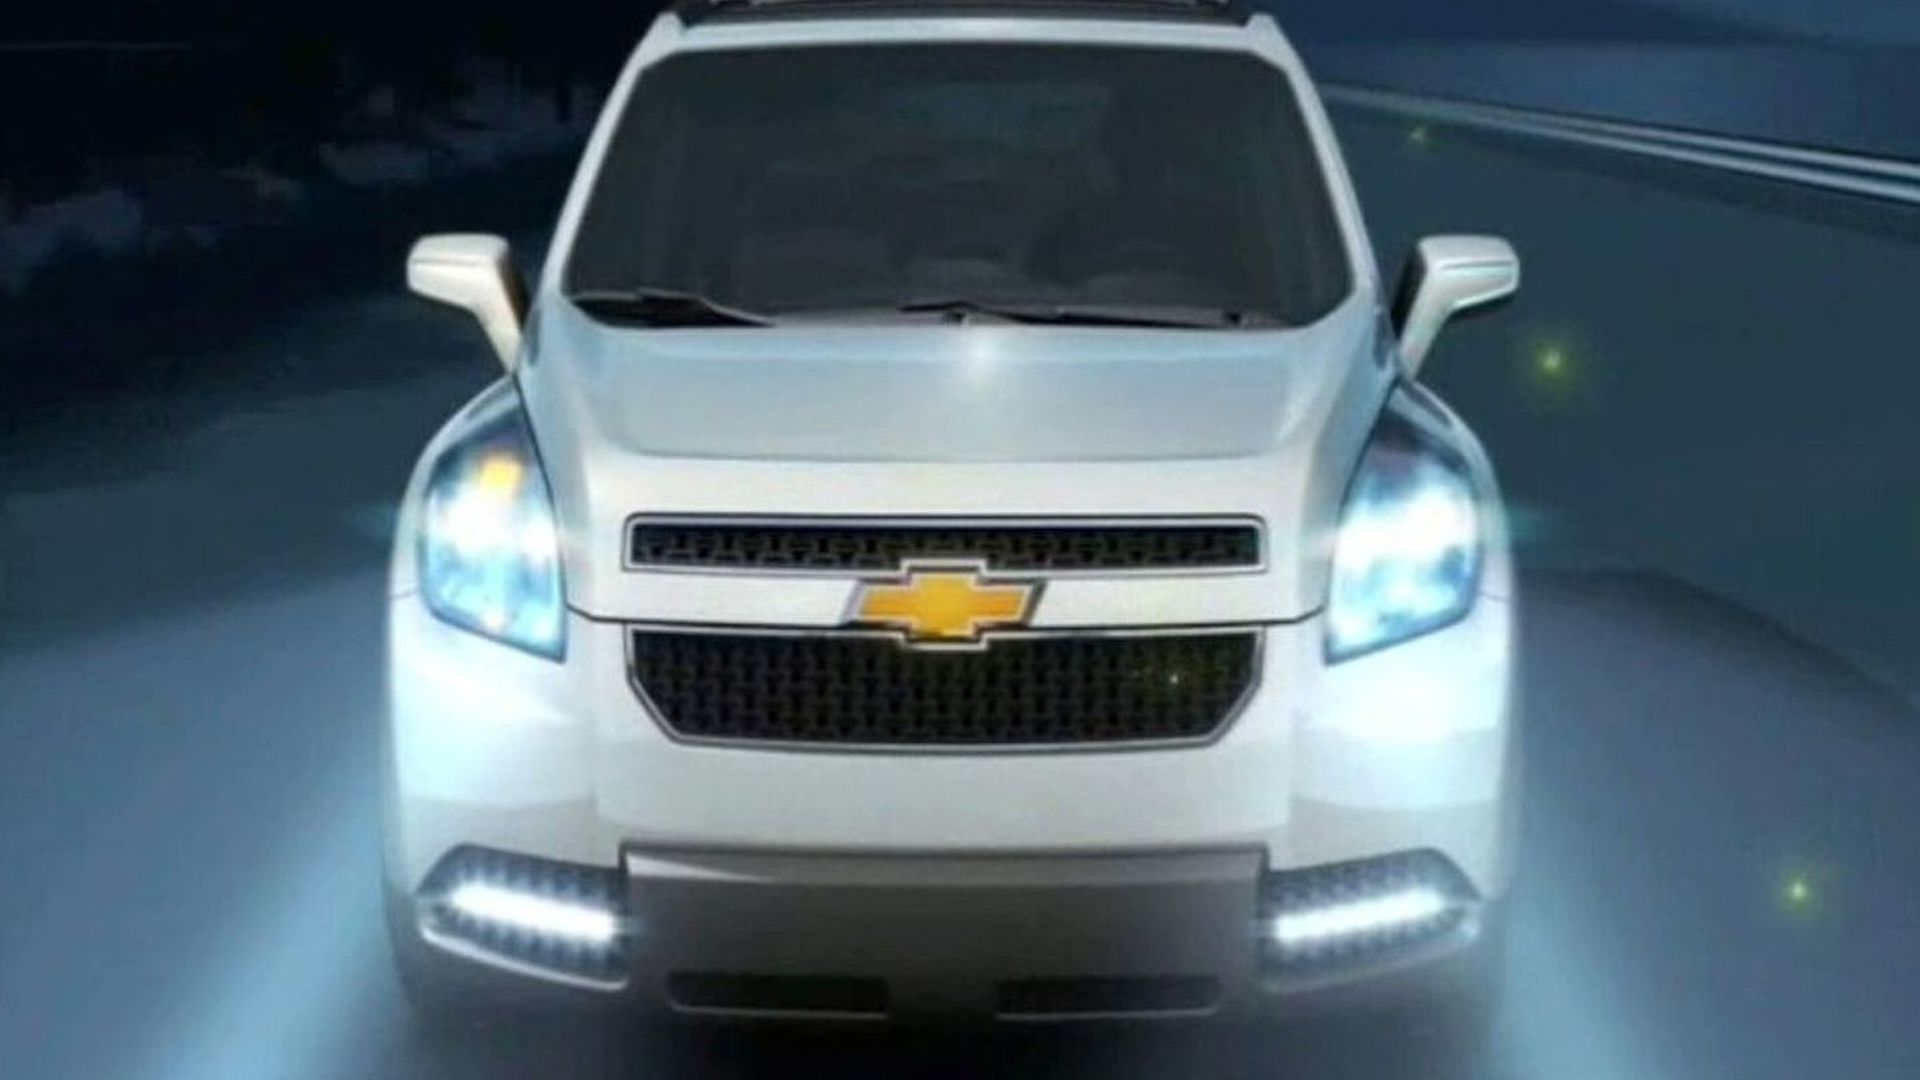 Video, New Images & Details Released for Chevrolet Orlando Concept Unveiling